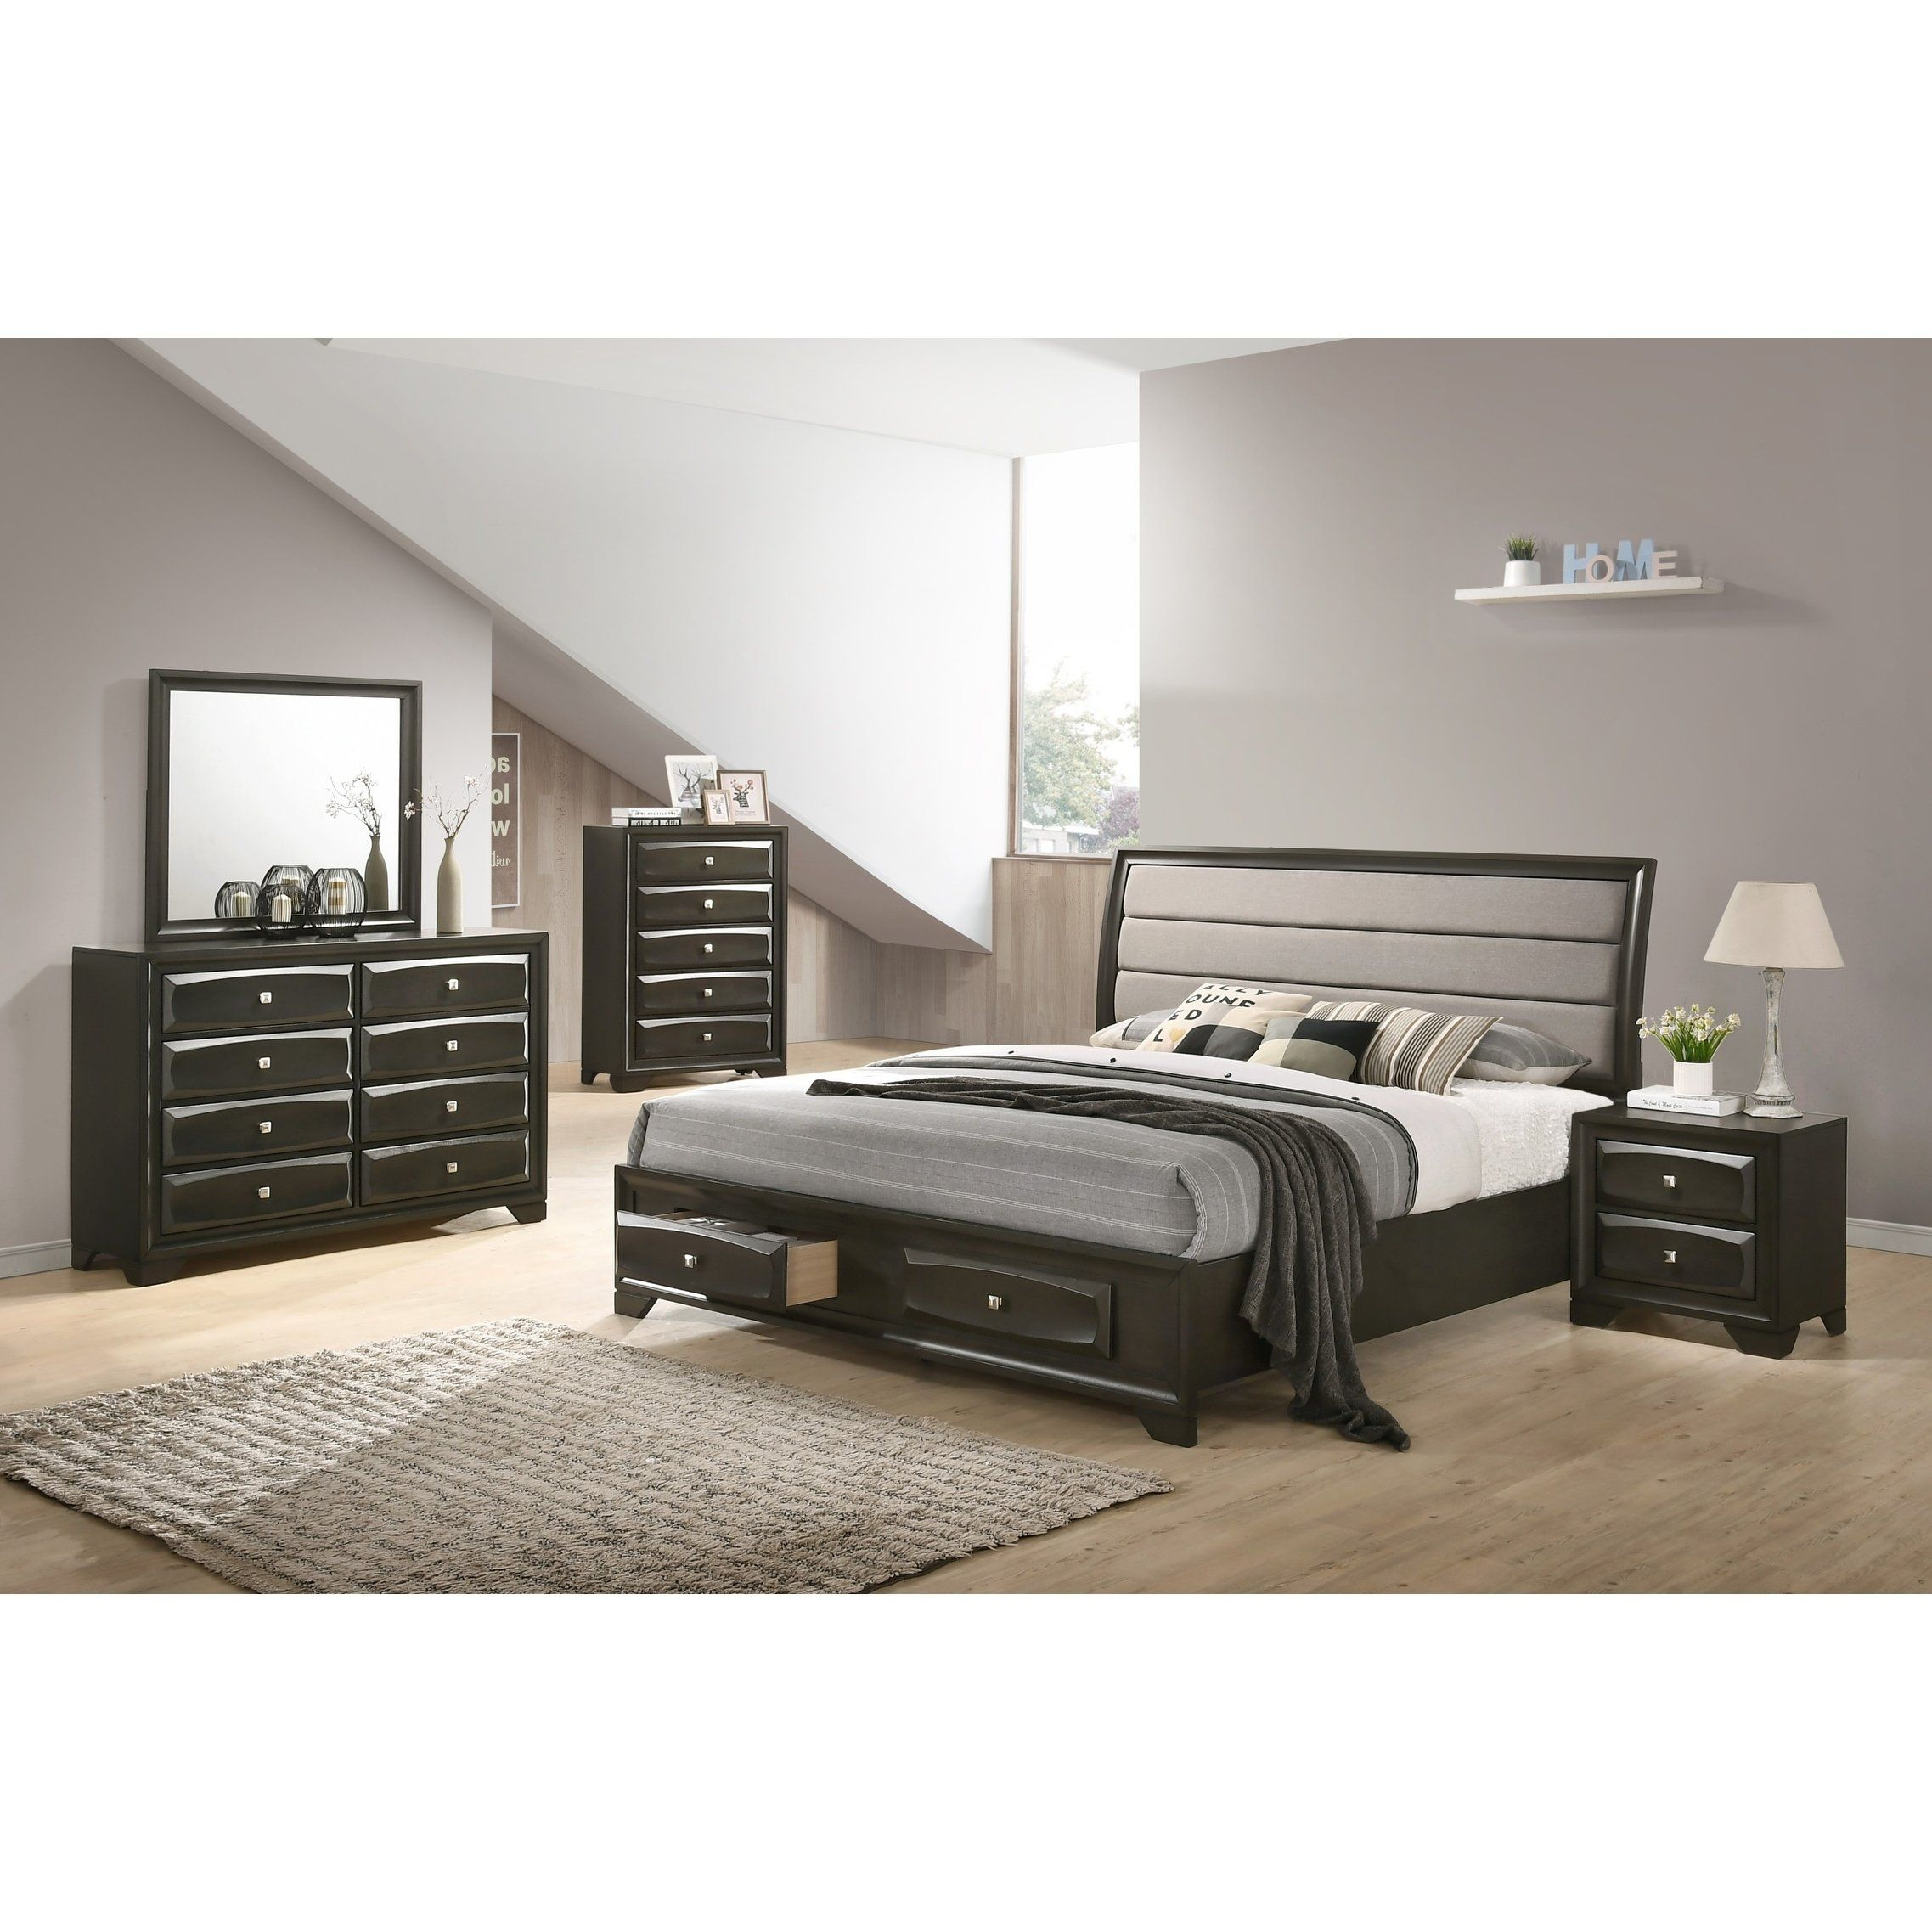 Asger Antique Gray Finish Wood 5 Pc Upholstered Queen Bedroom Set